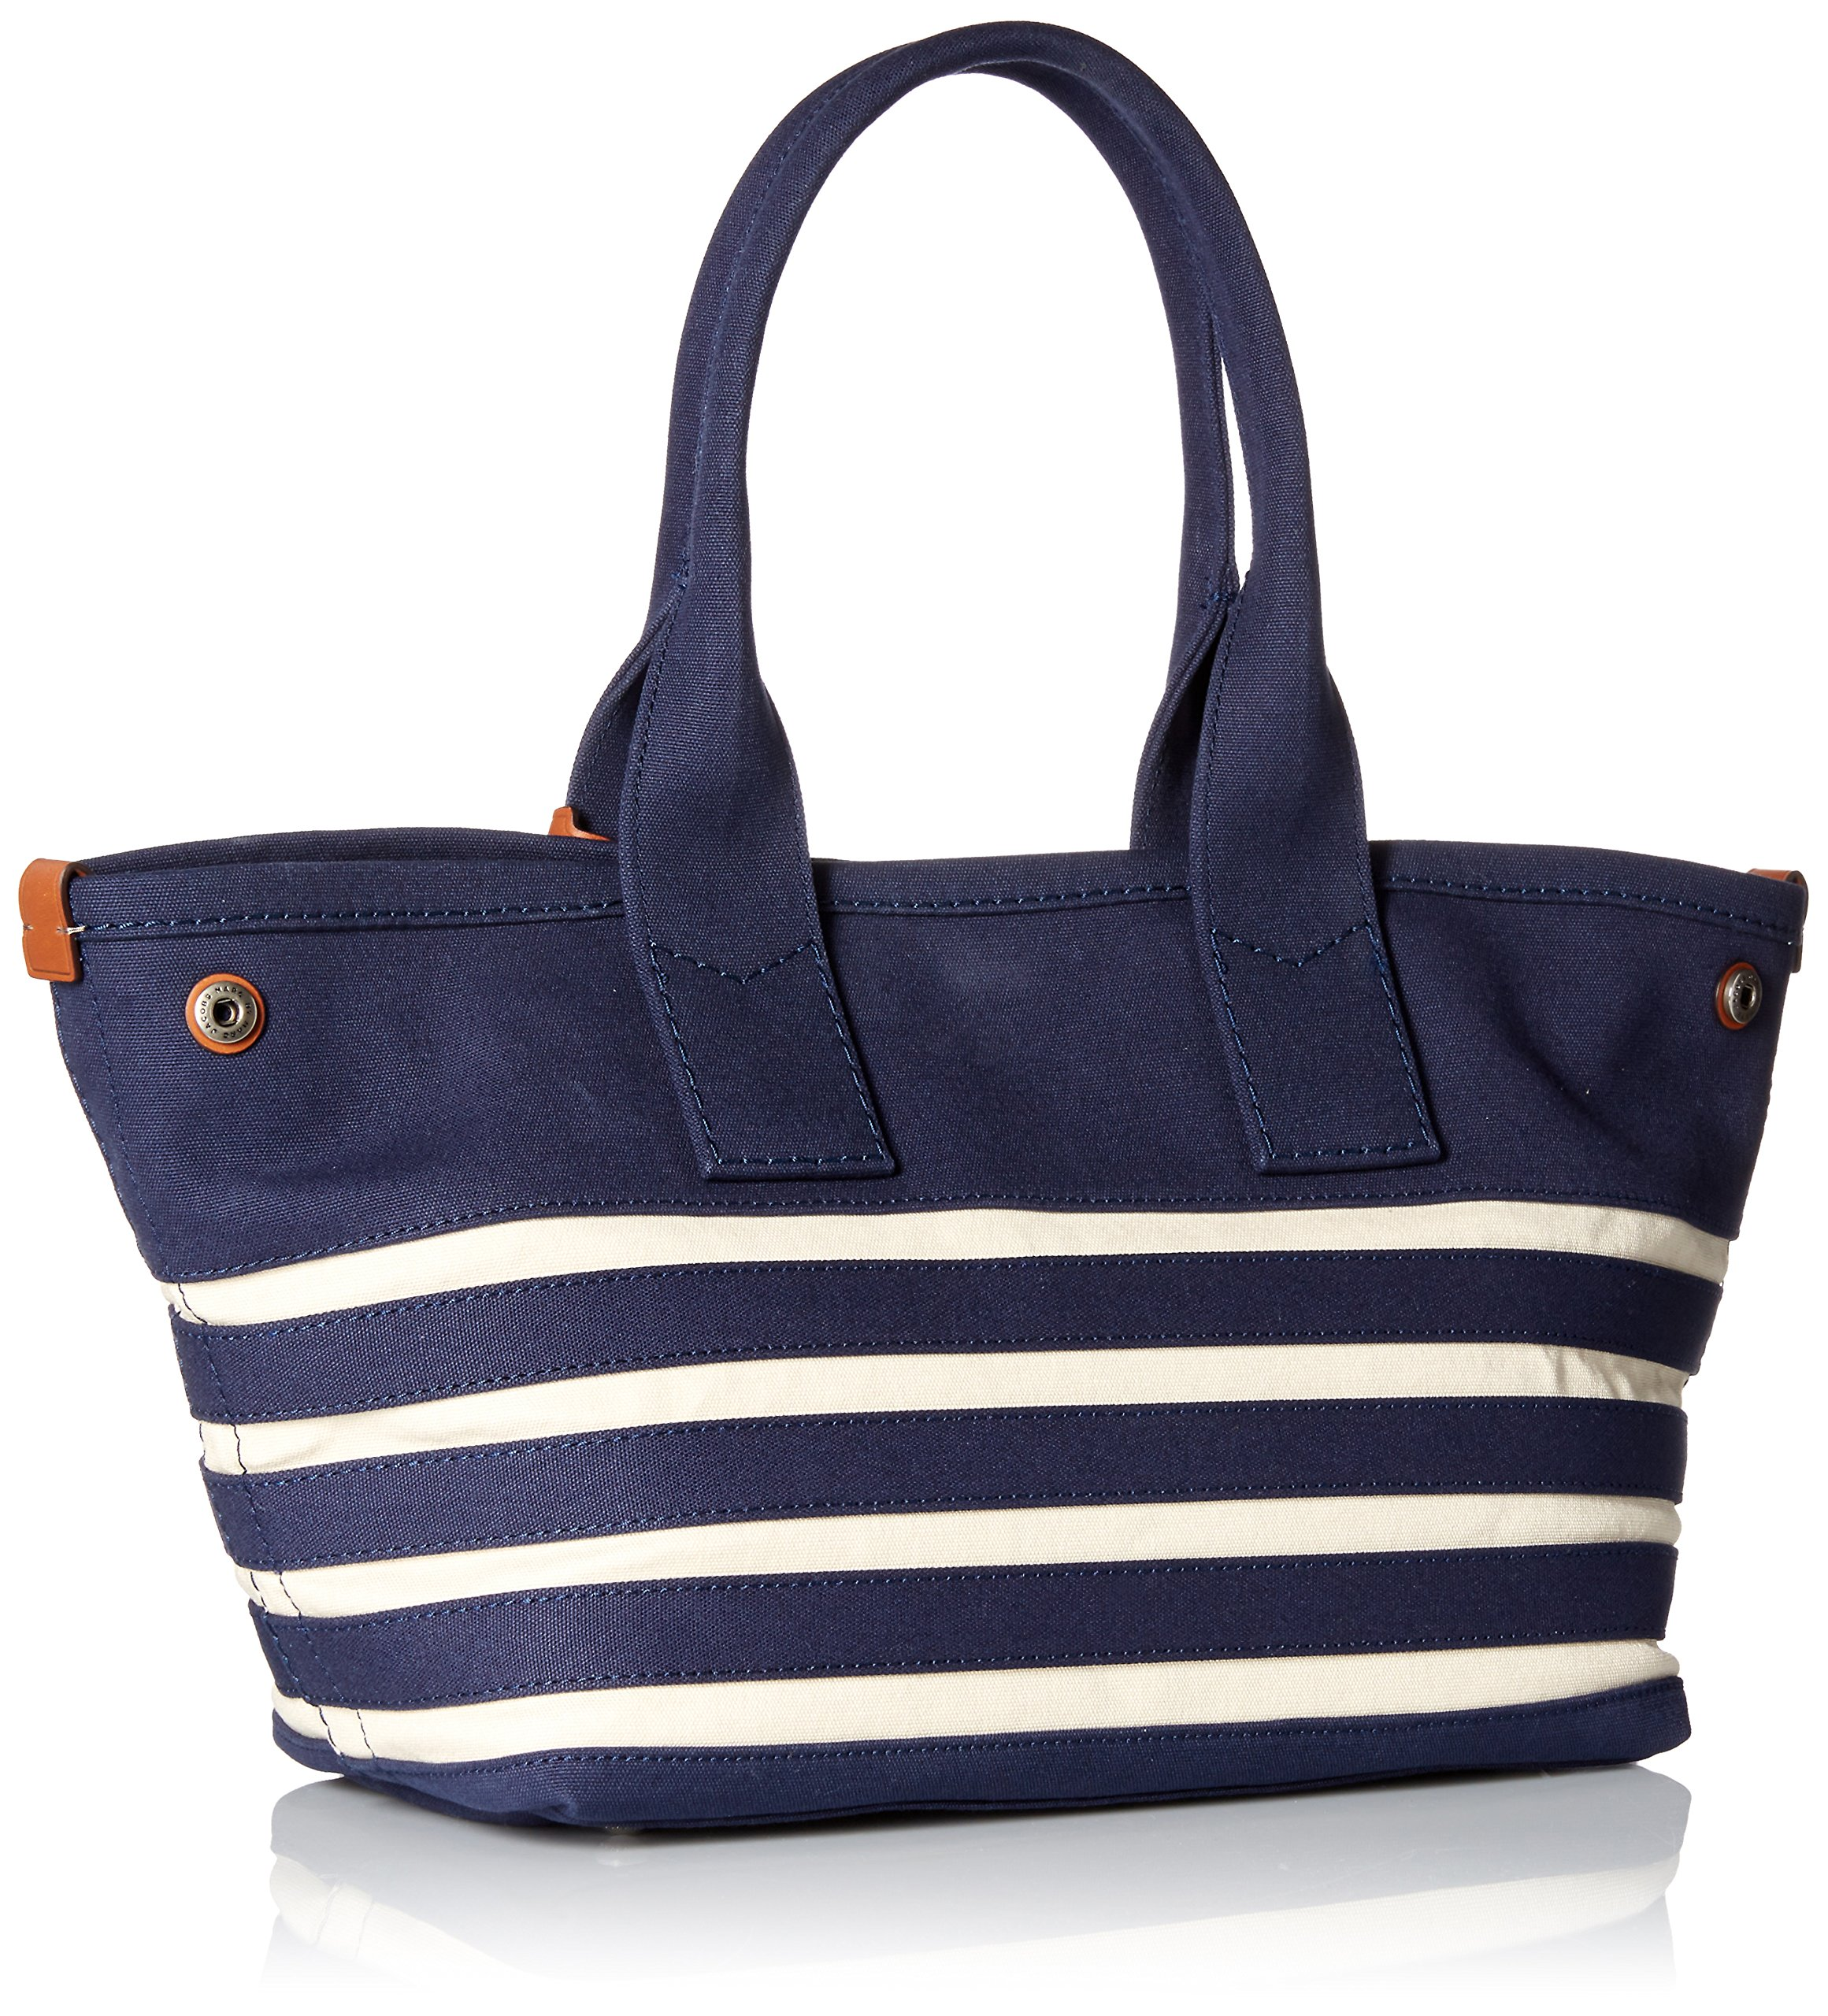 Marc by Marc Jacobs ST Tropez Tote Bag, New Prussian Blue/Ecru, One Size by Marc by Marc Jacobs (Image #2)